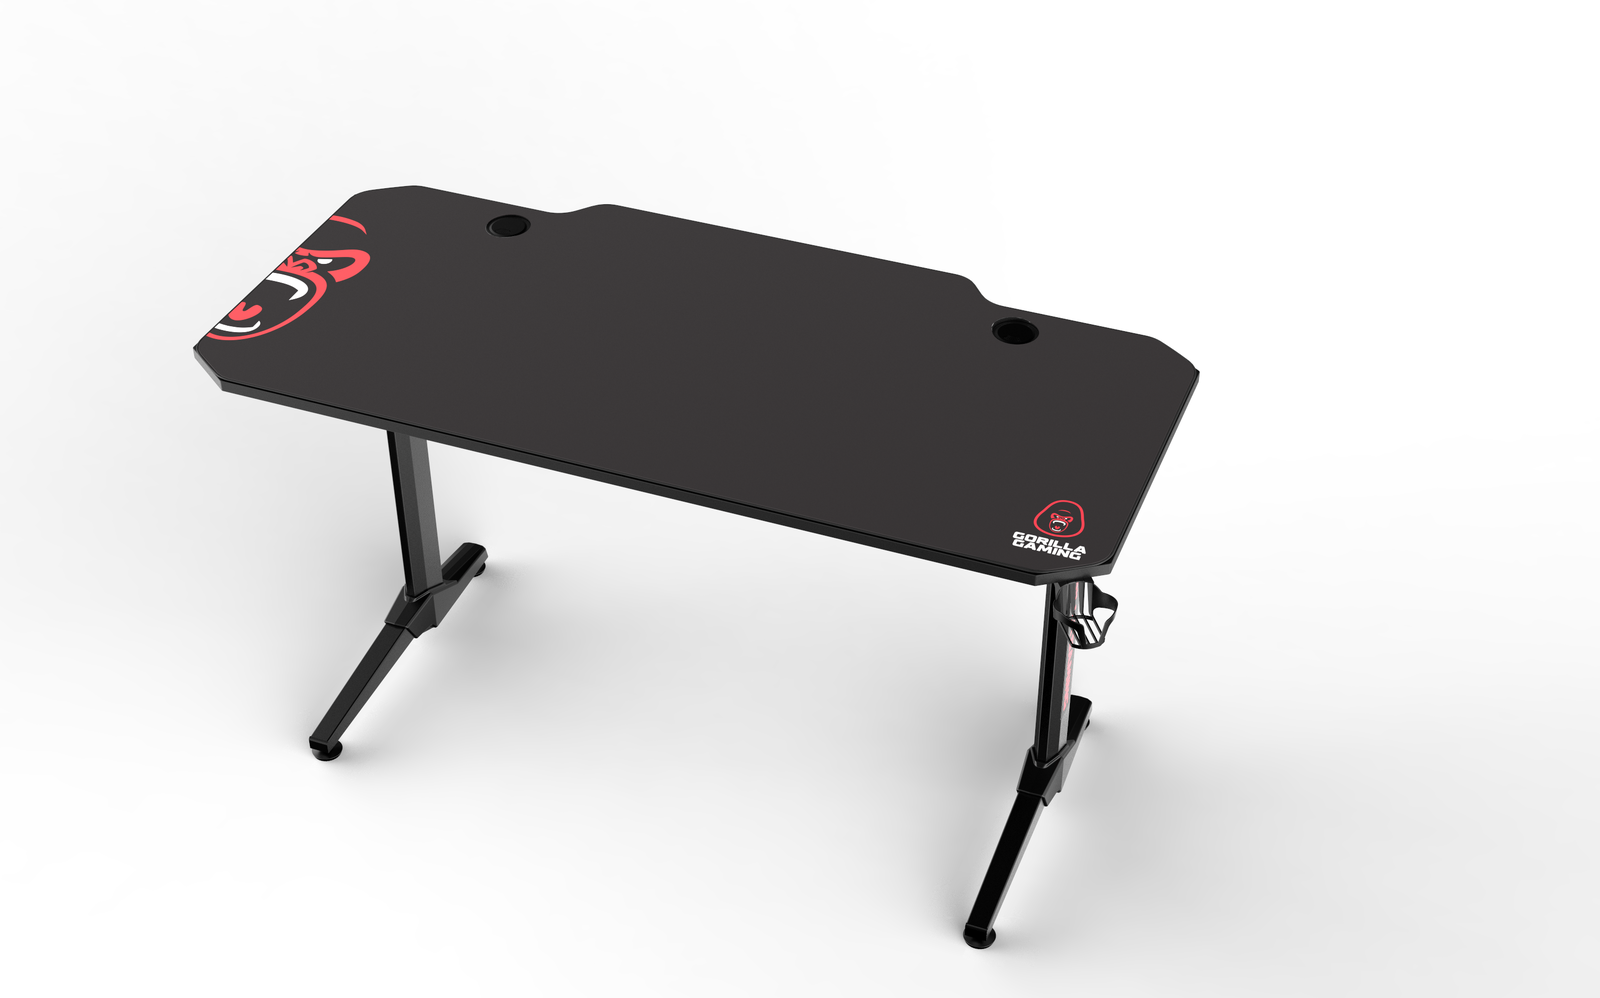 Gorilla Gaming Desk - Champion image